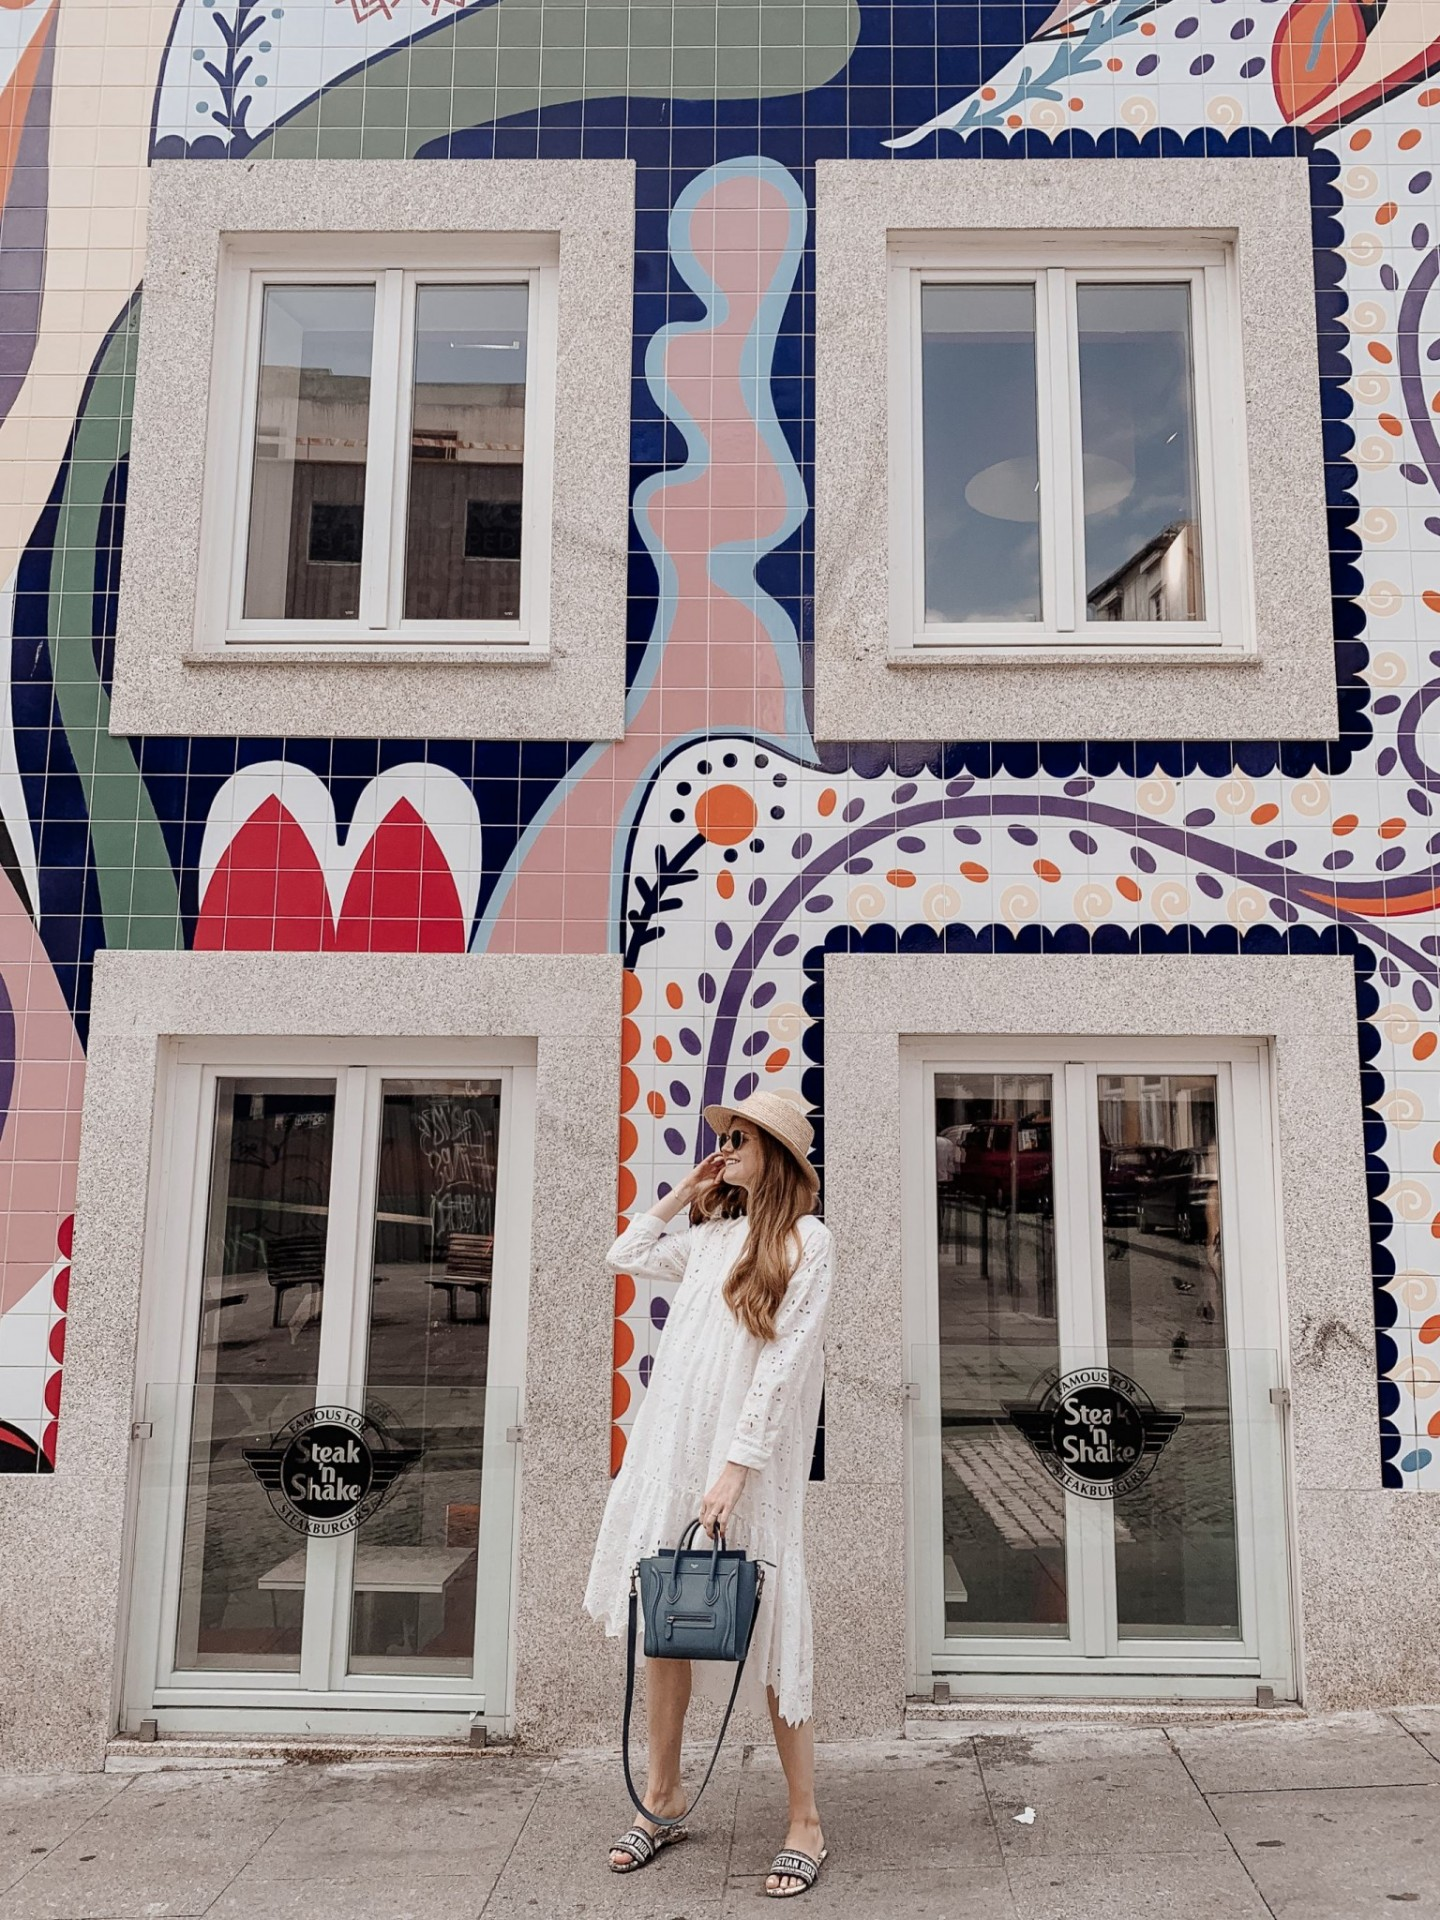 Lifestyle blogger Mollie Moore shares a Porto travel guide | A Porto Portugal Travel Guide by popular Great Britain international travel blogger, Mollie Moore: image of a woman standing in front of a stake n' shake building with a large tile mosaic in Porto Portugal.